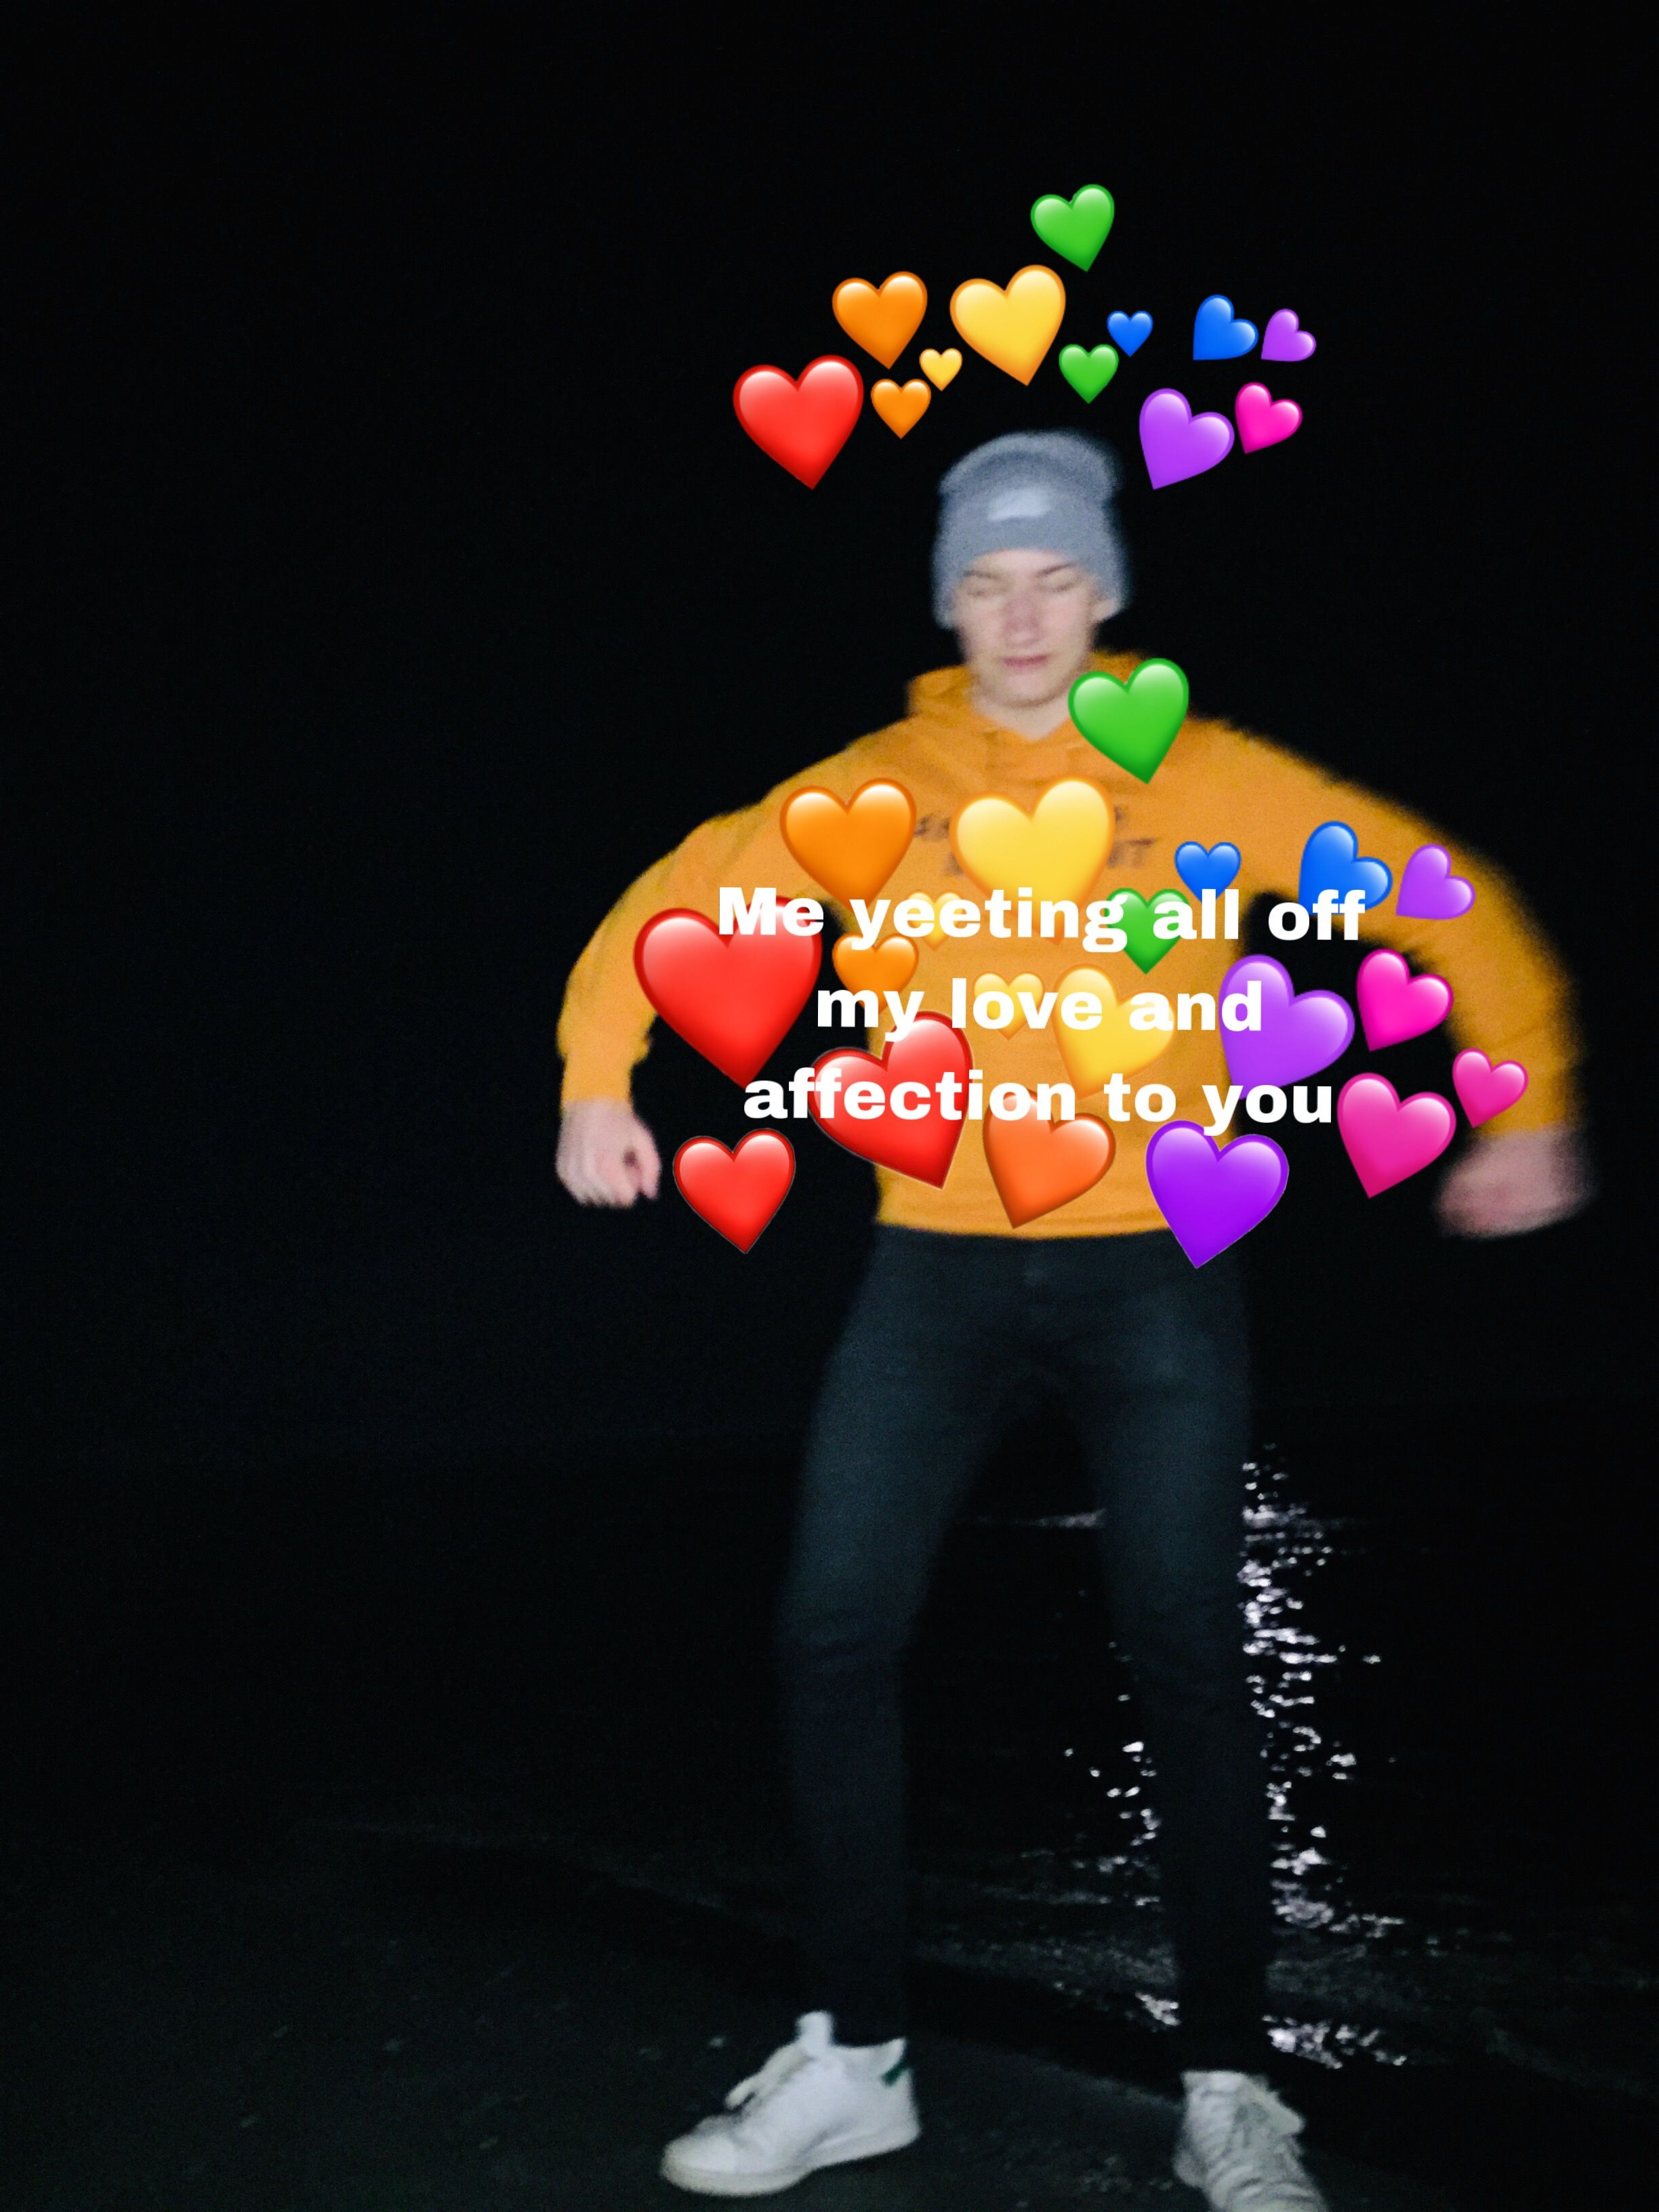 Love And Affection Memes Are Cute Love Memes Cute Memes Wholesome Memes